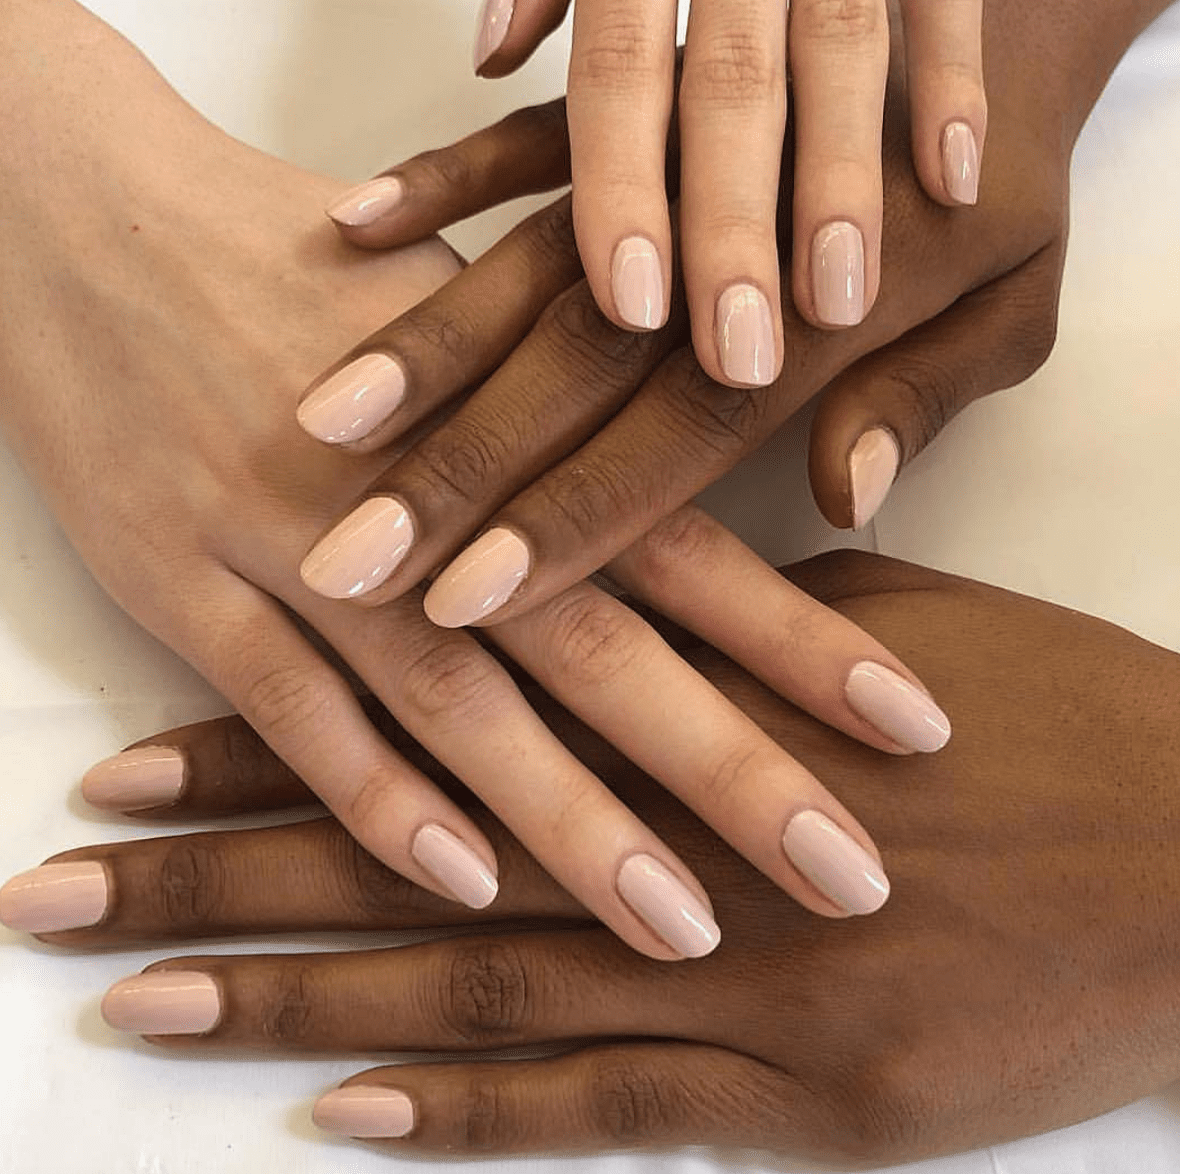 Everything You Need to Know About Getting a Gel Manicure